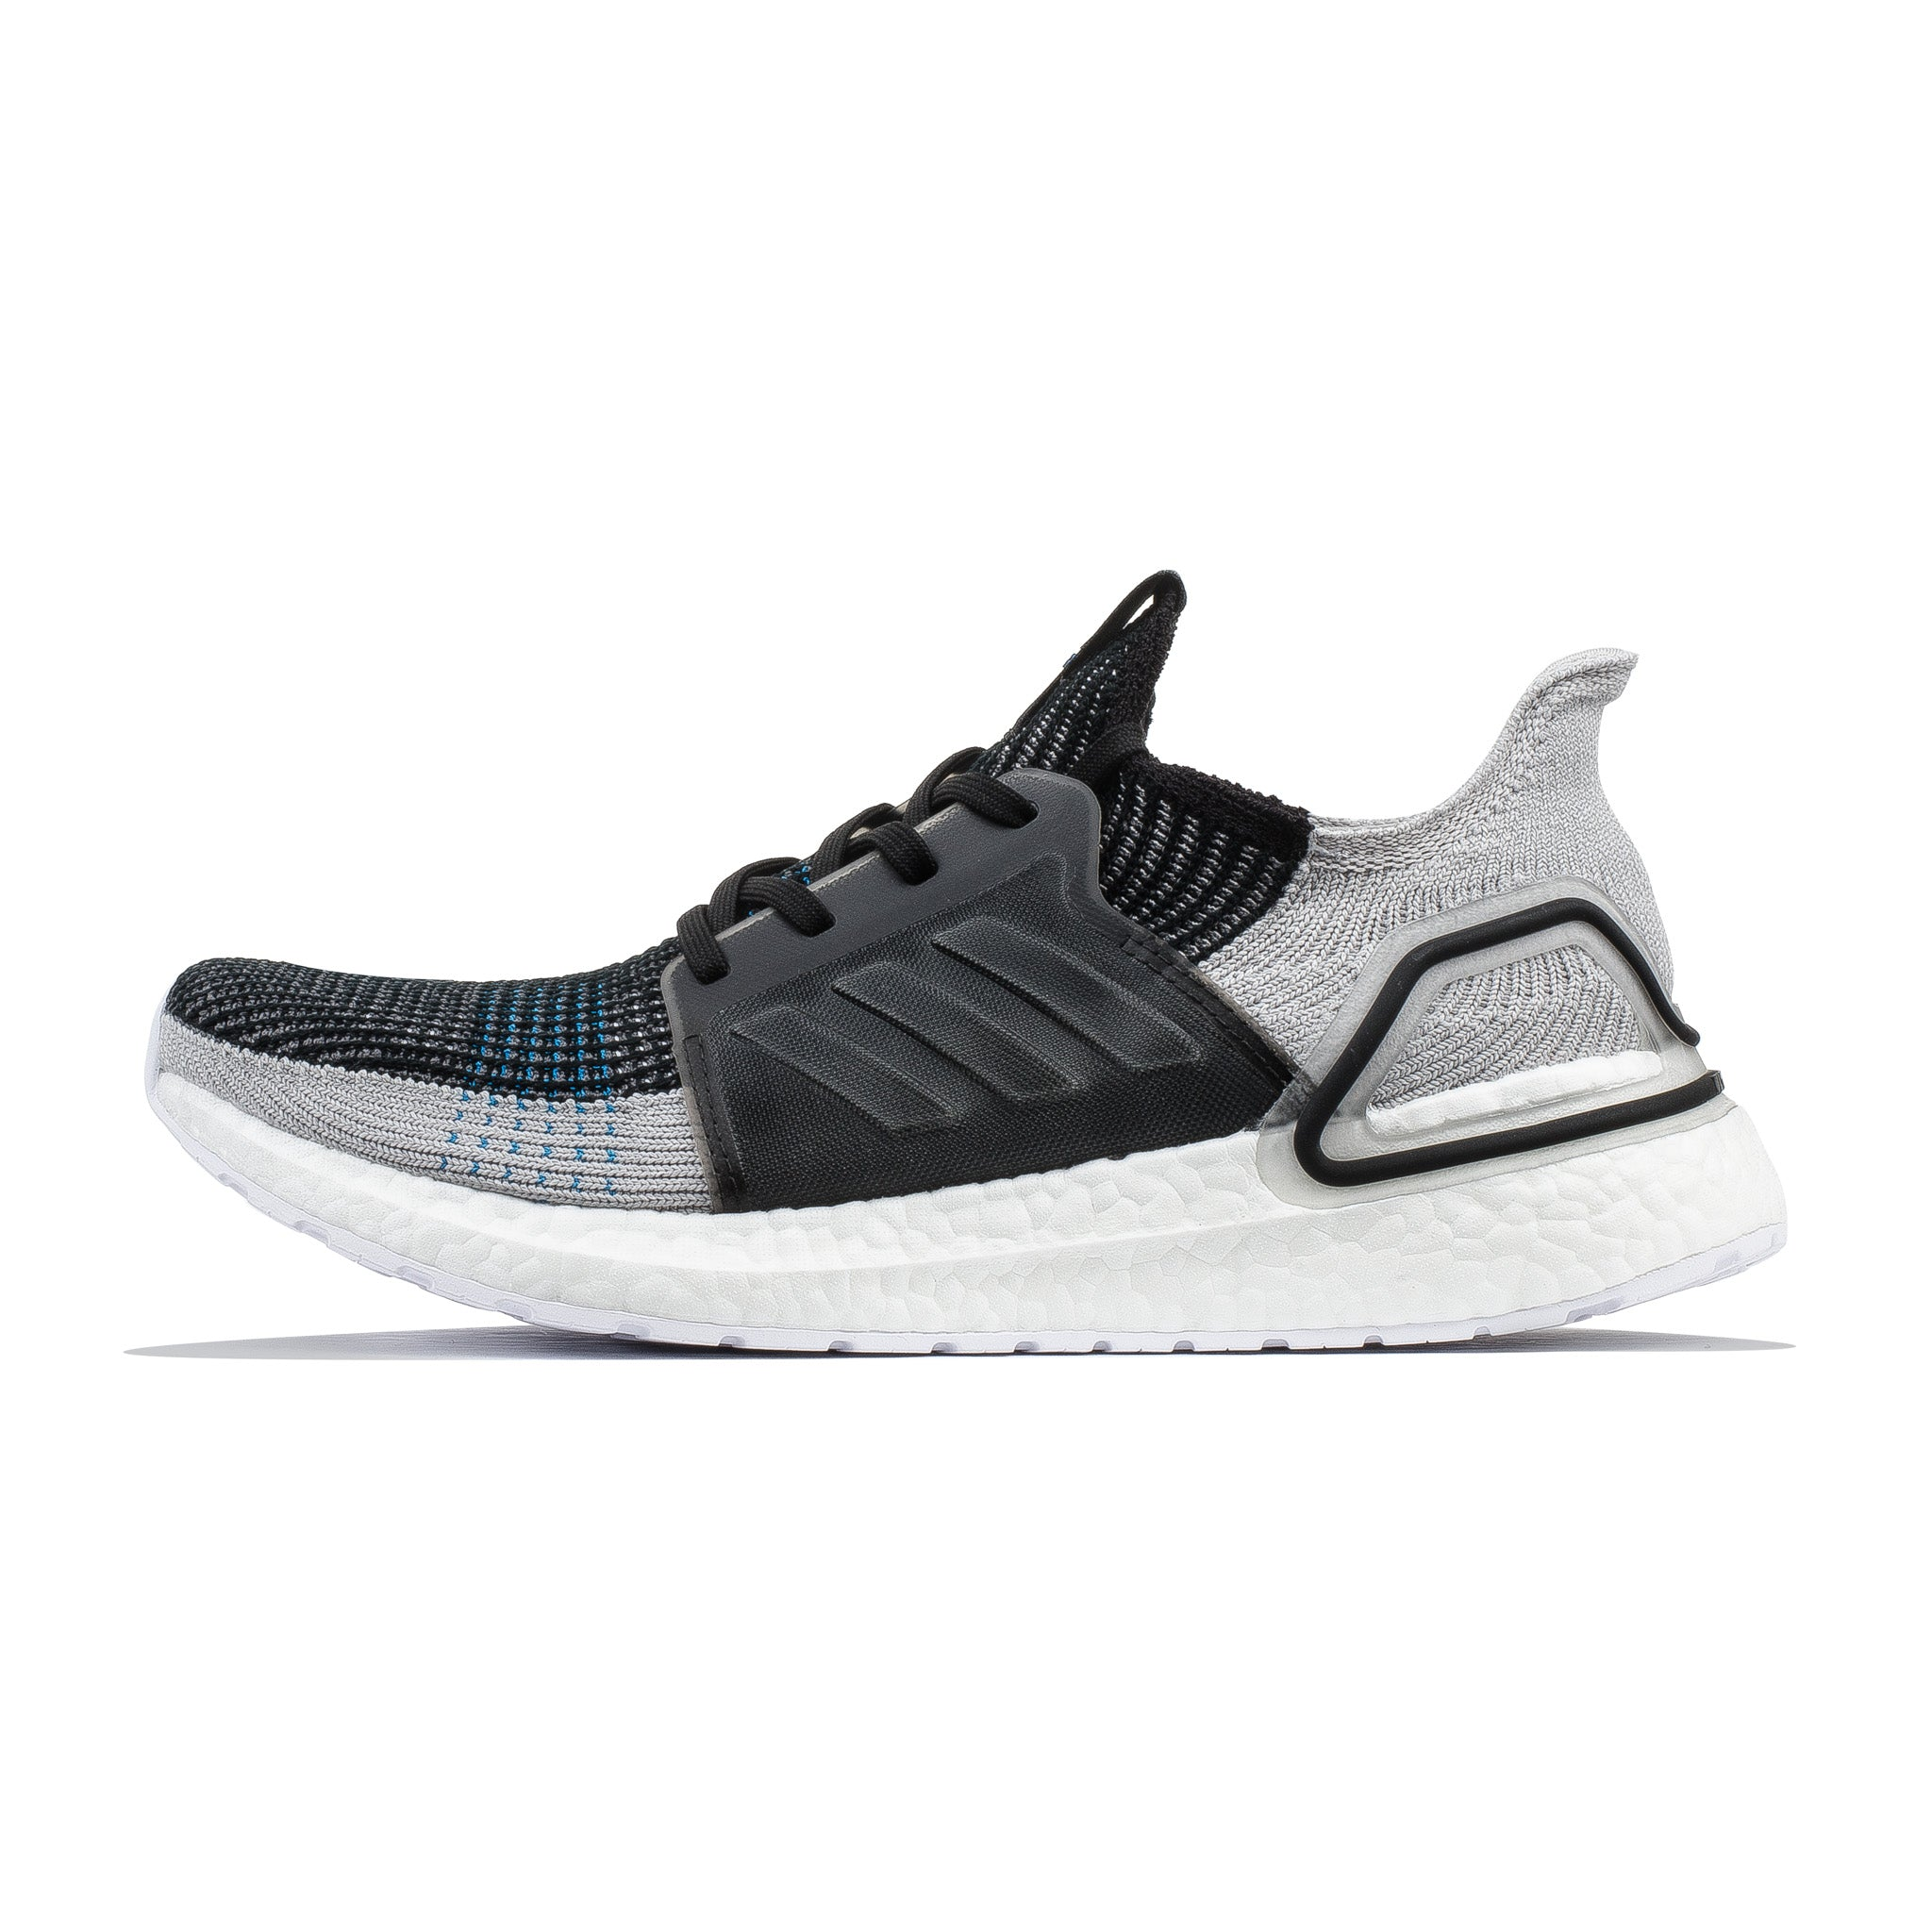 Ultraboost 2019 F35242 Black